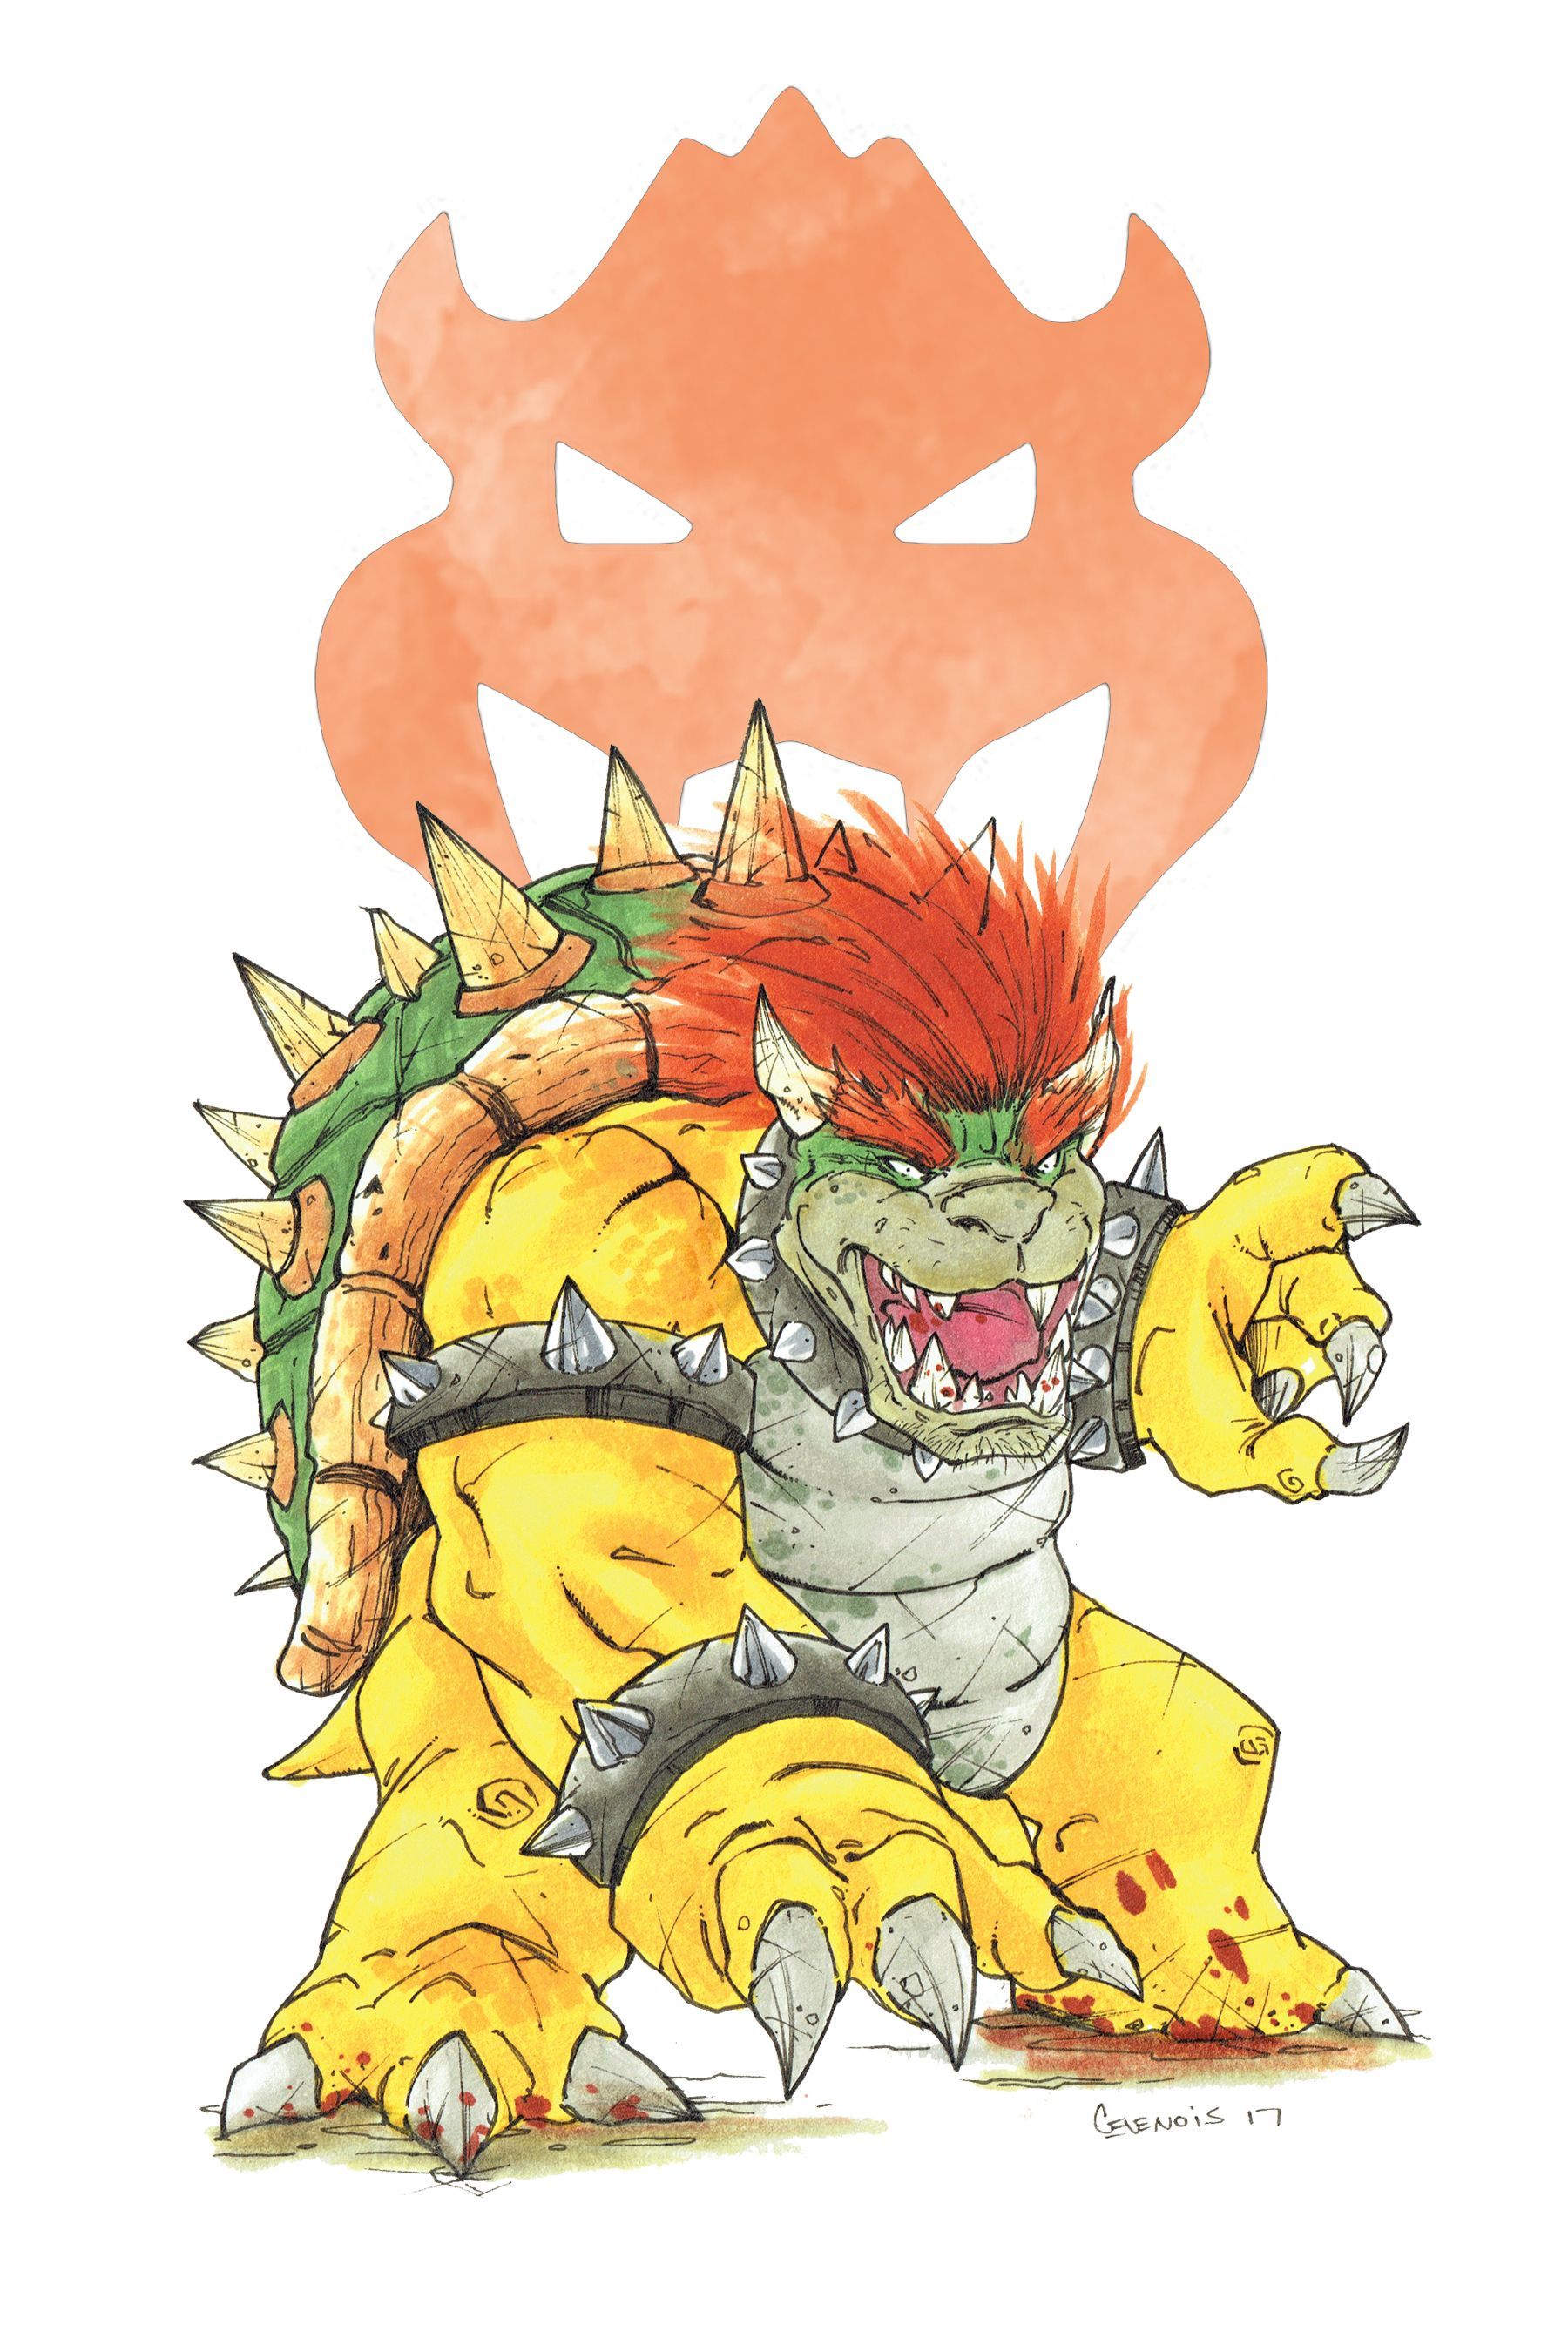 Copic Marker Drawing Bowser Copic Marker Drawings Marker Drawing Bowser